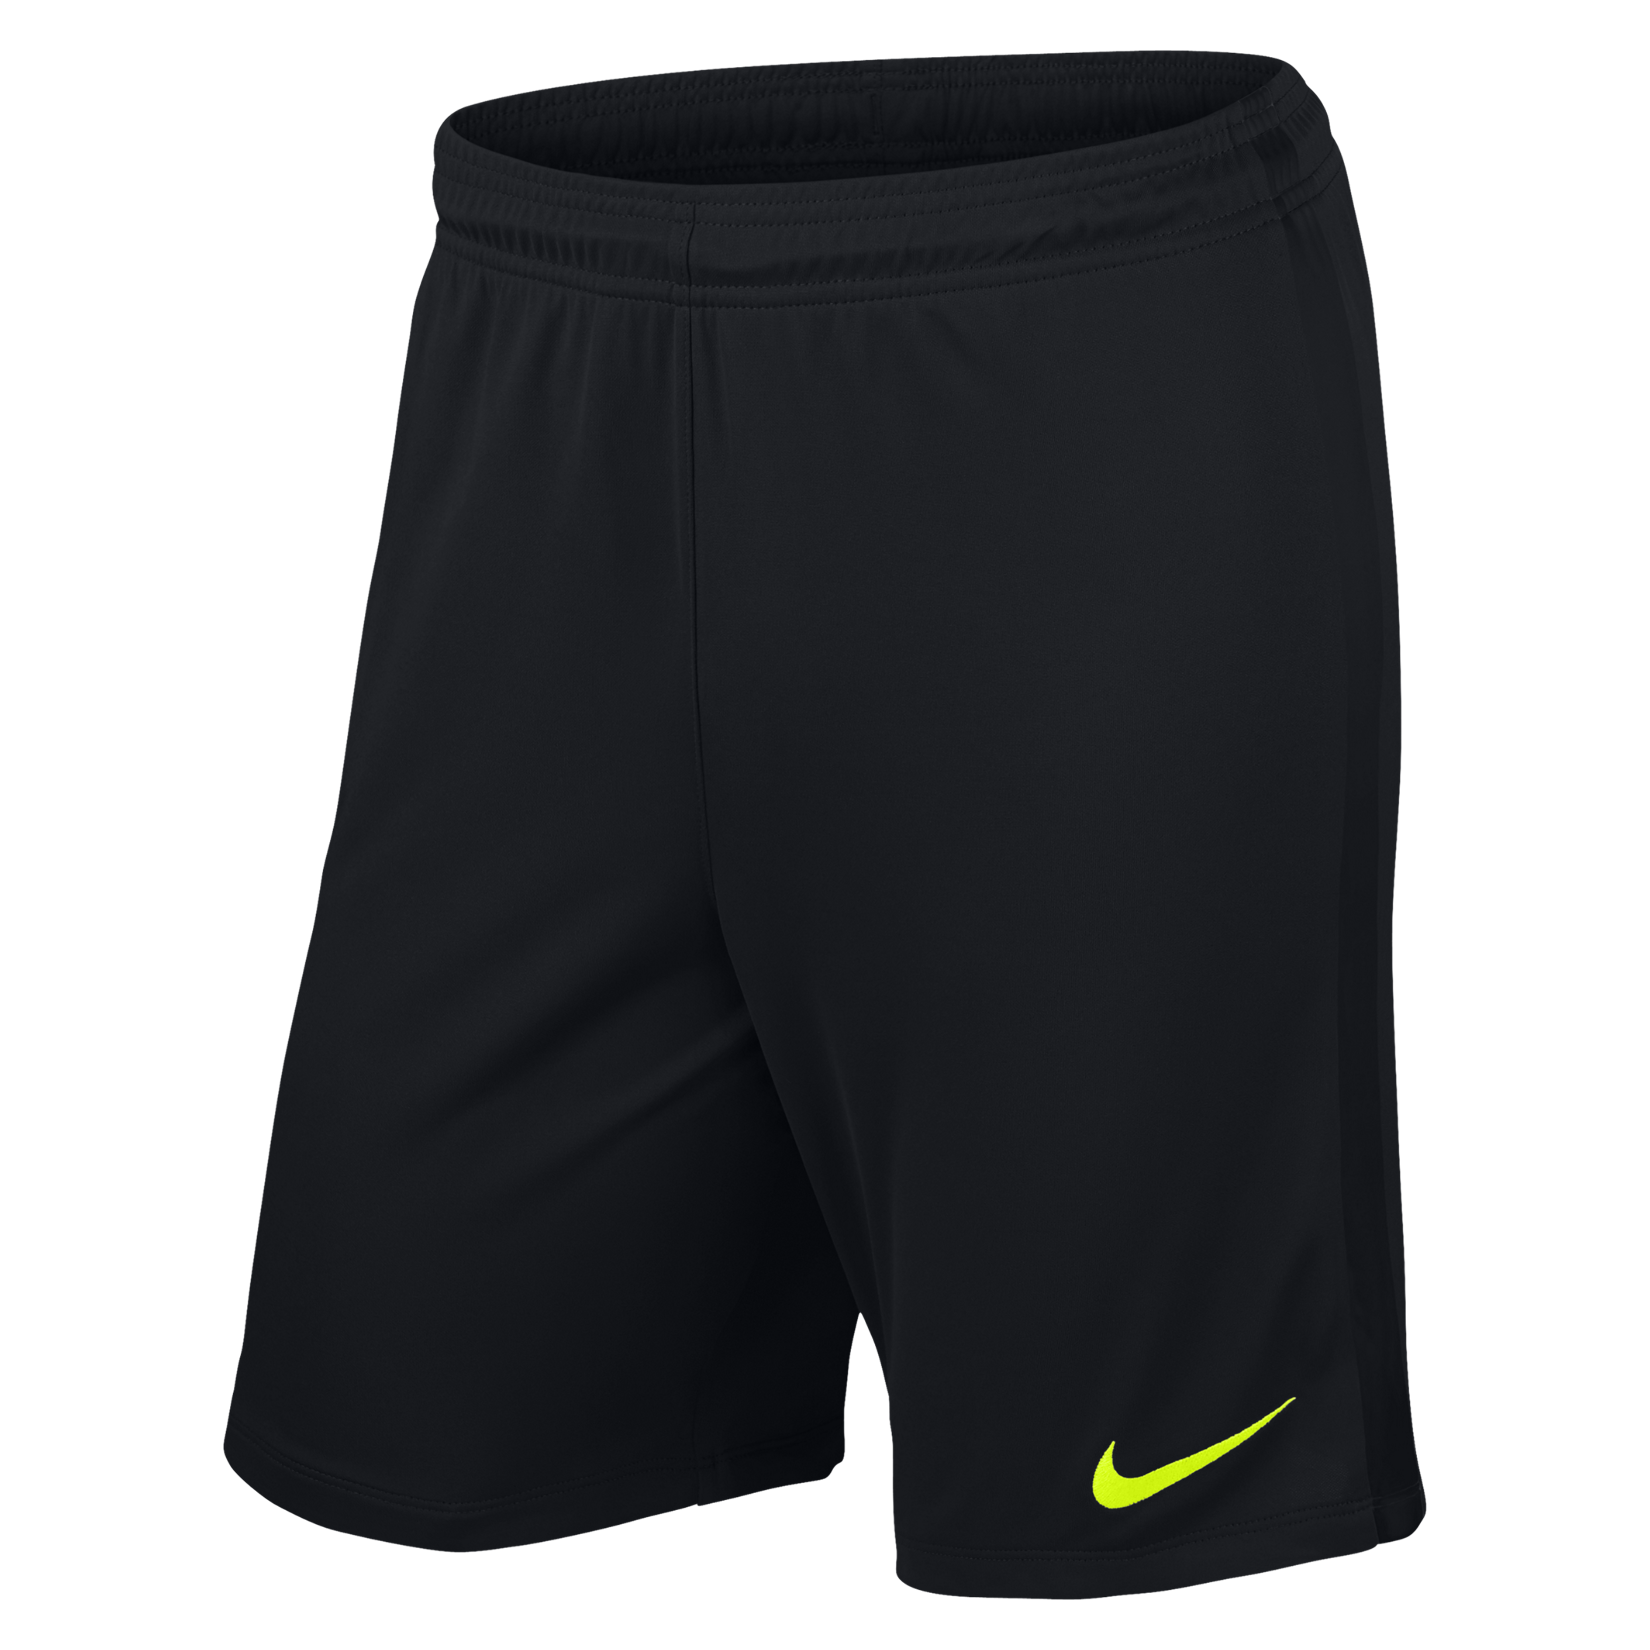 Nike League Knit Short Black-Black-Volt